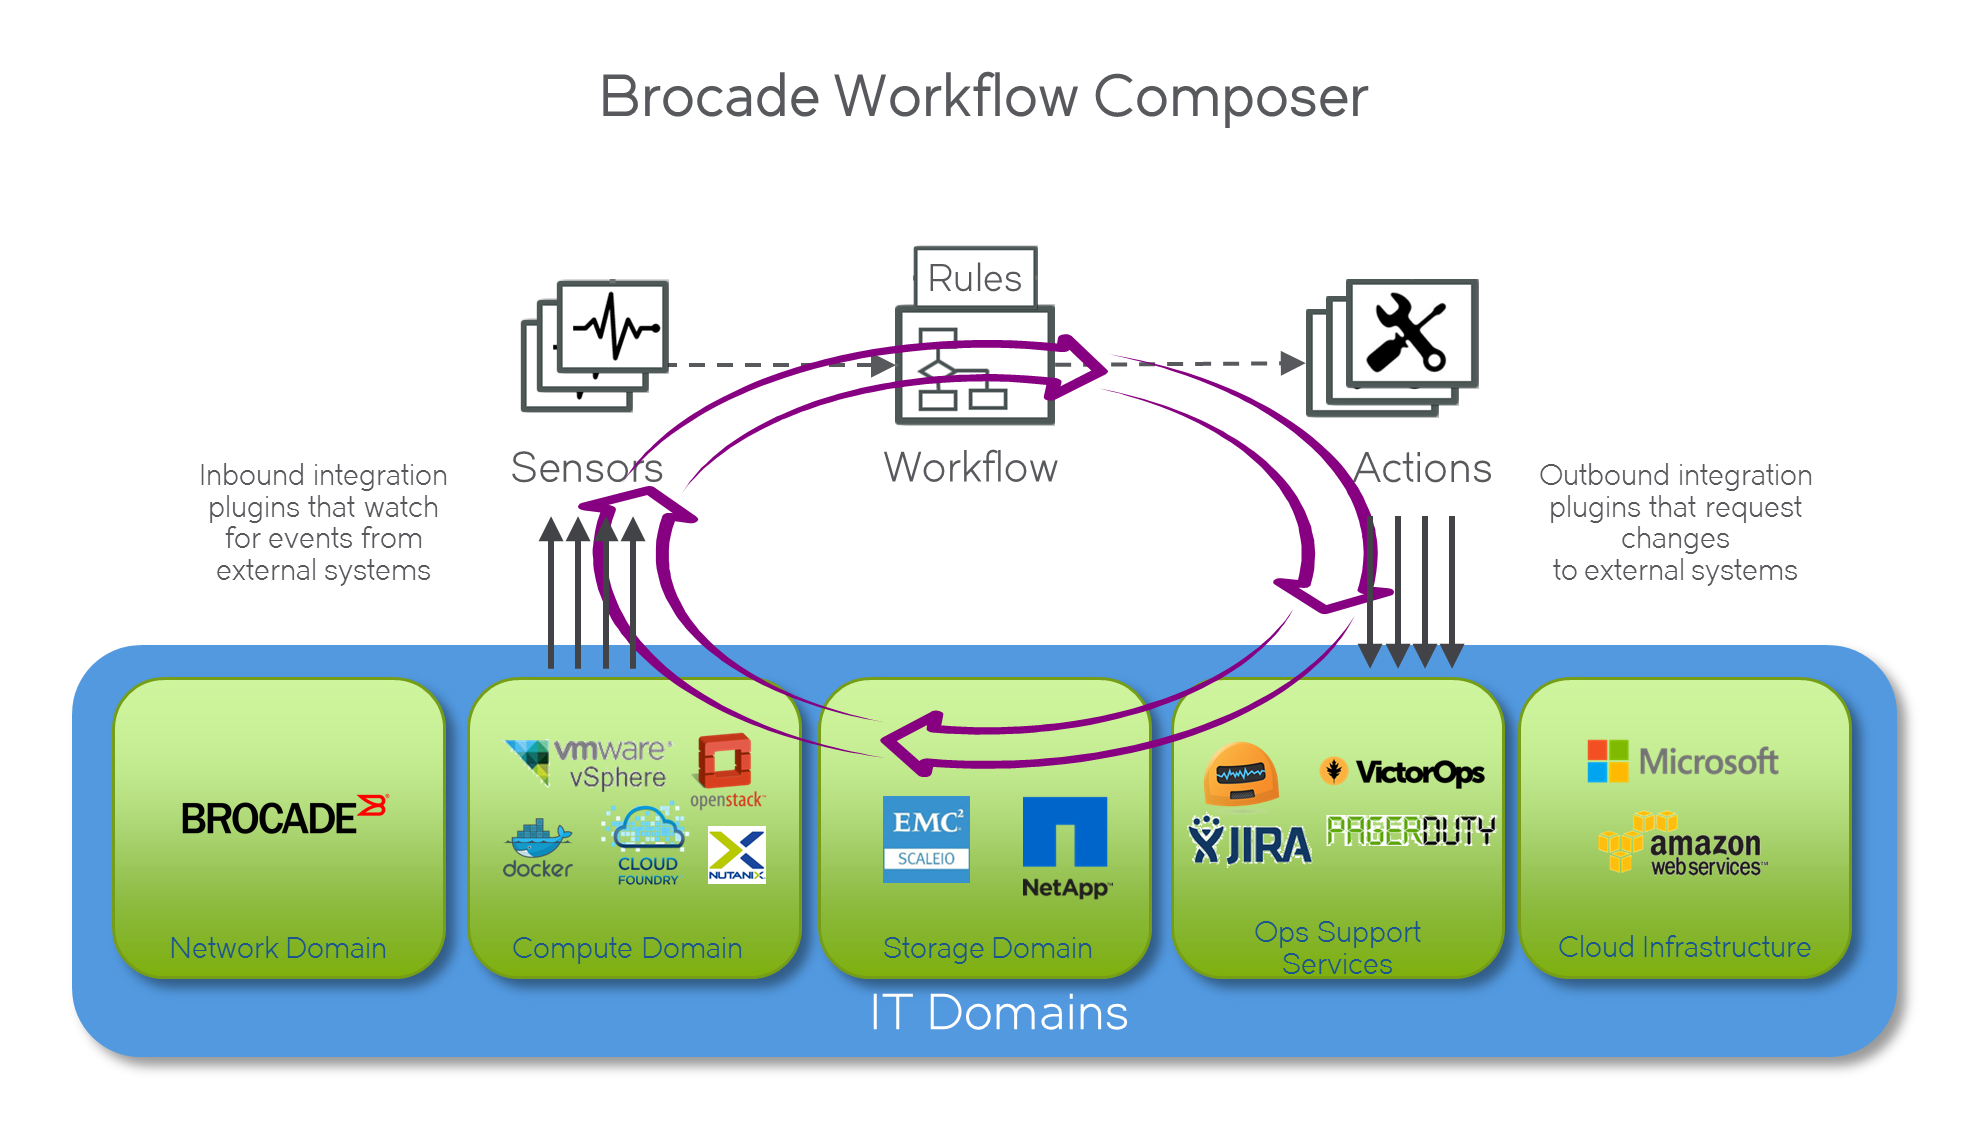 Brocade Workflow Composer for press